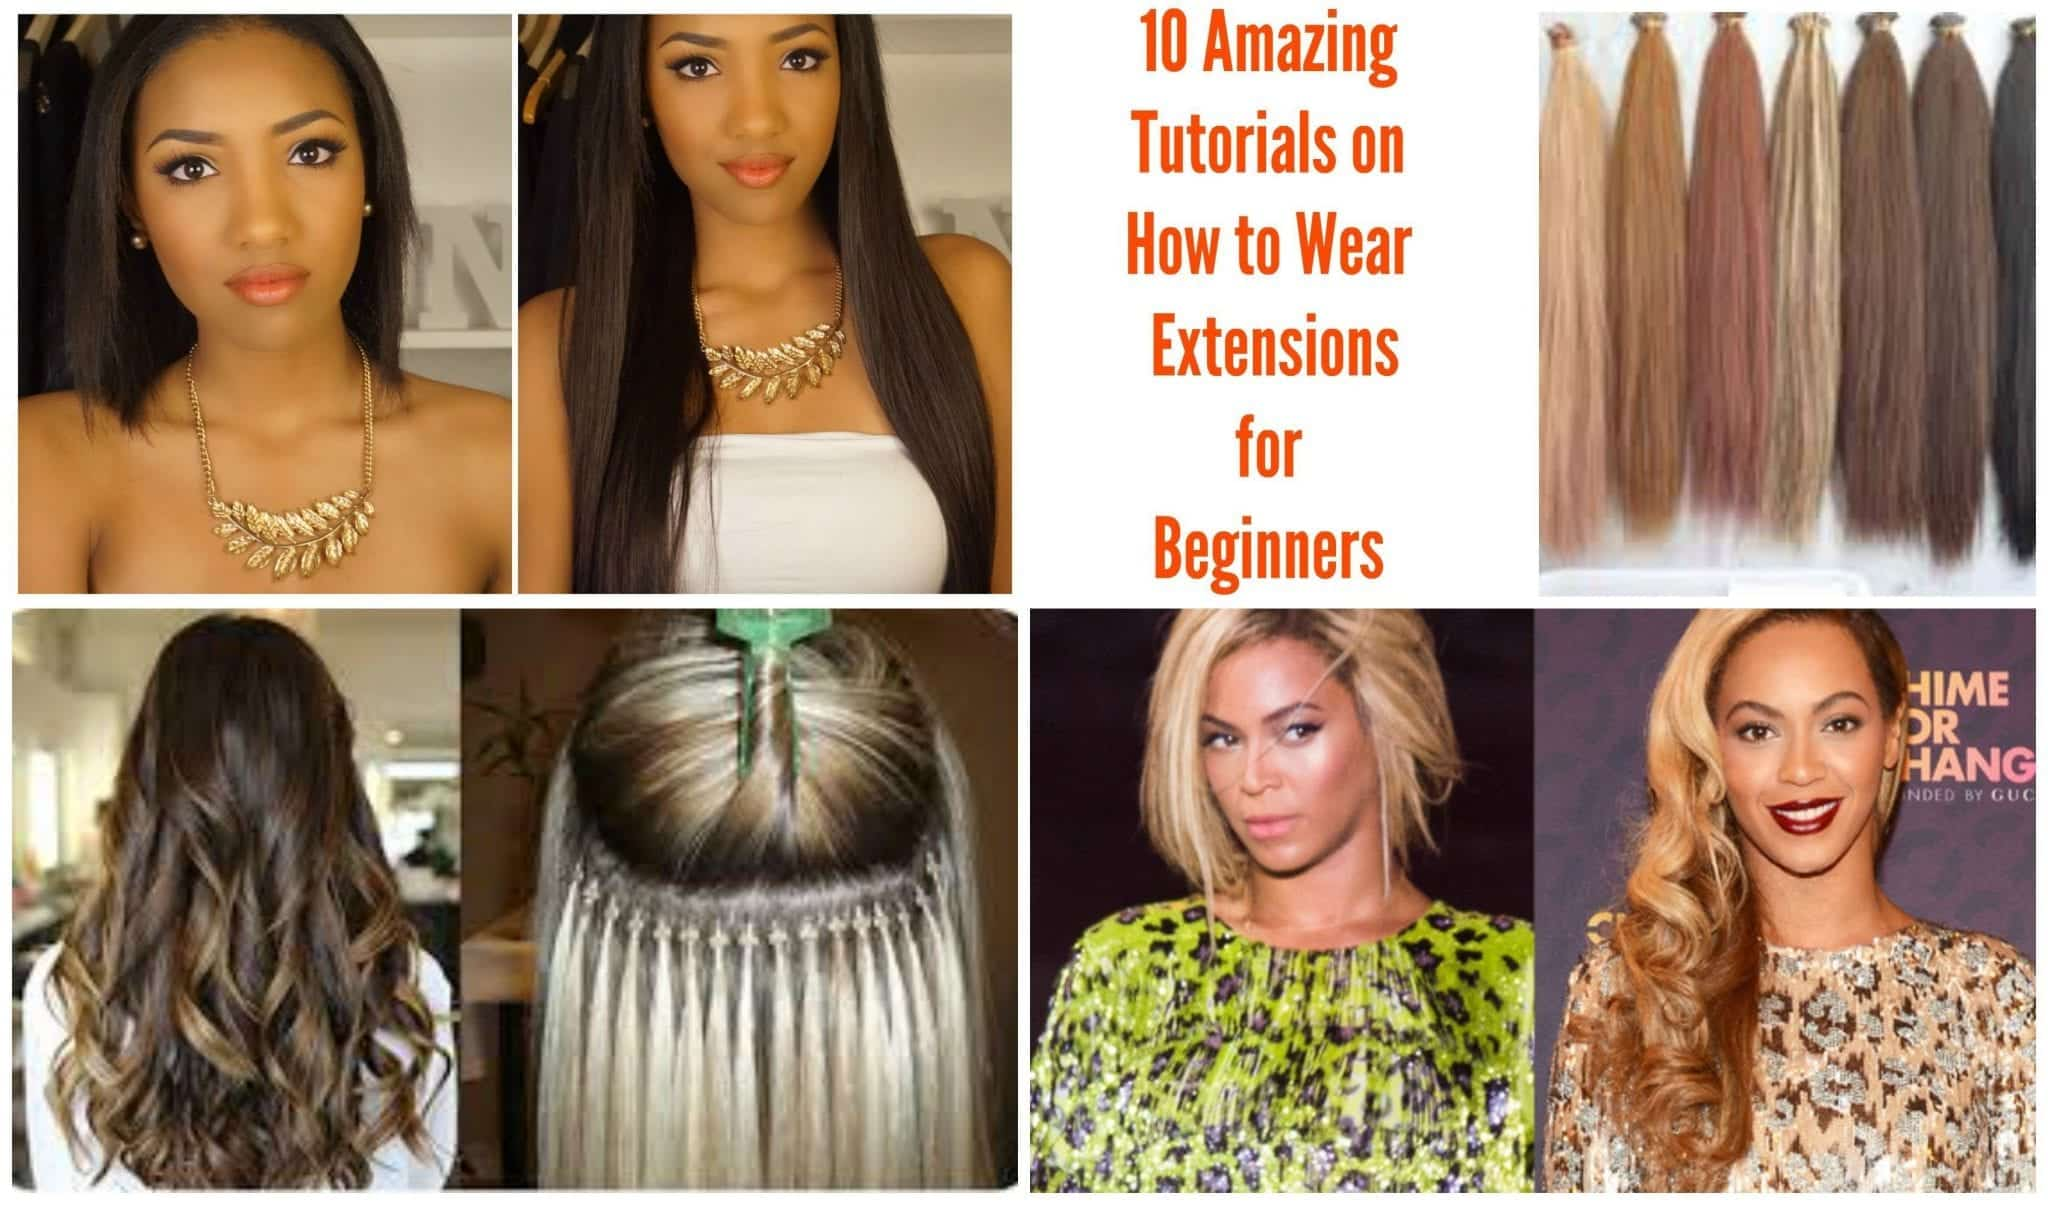 extension tutorials for beginners